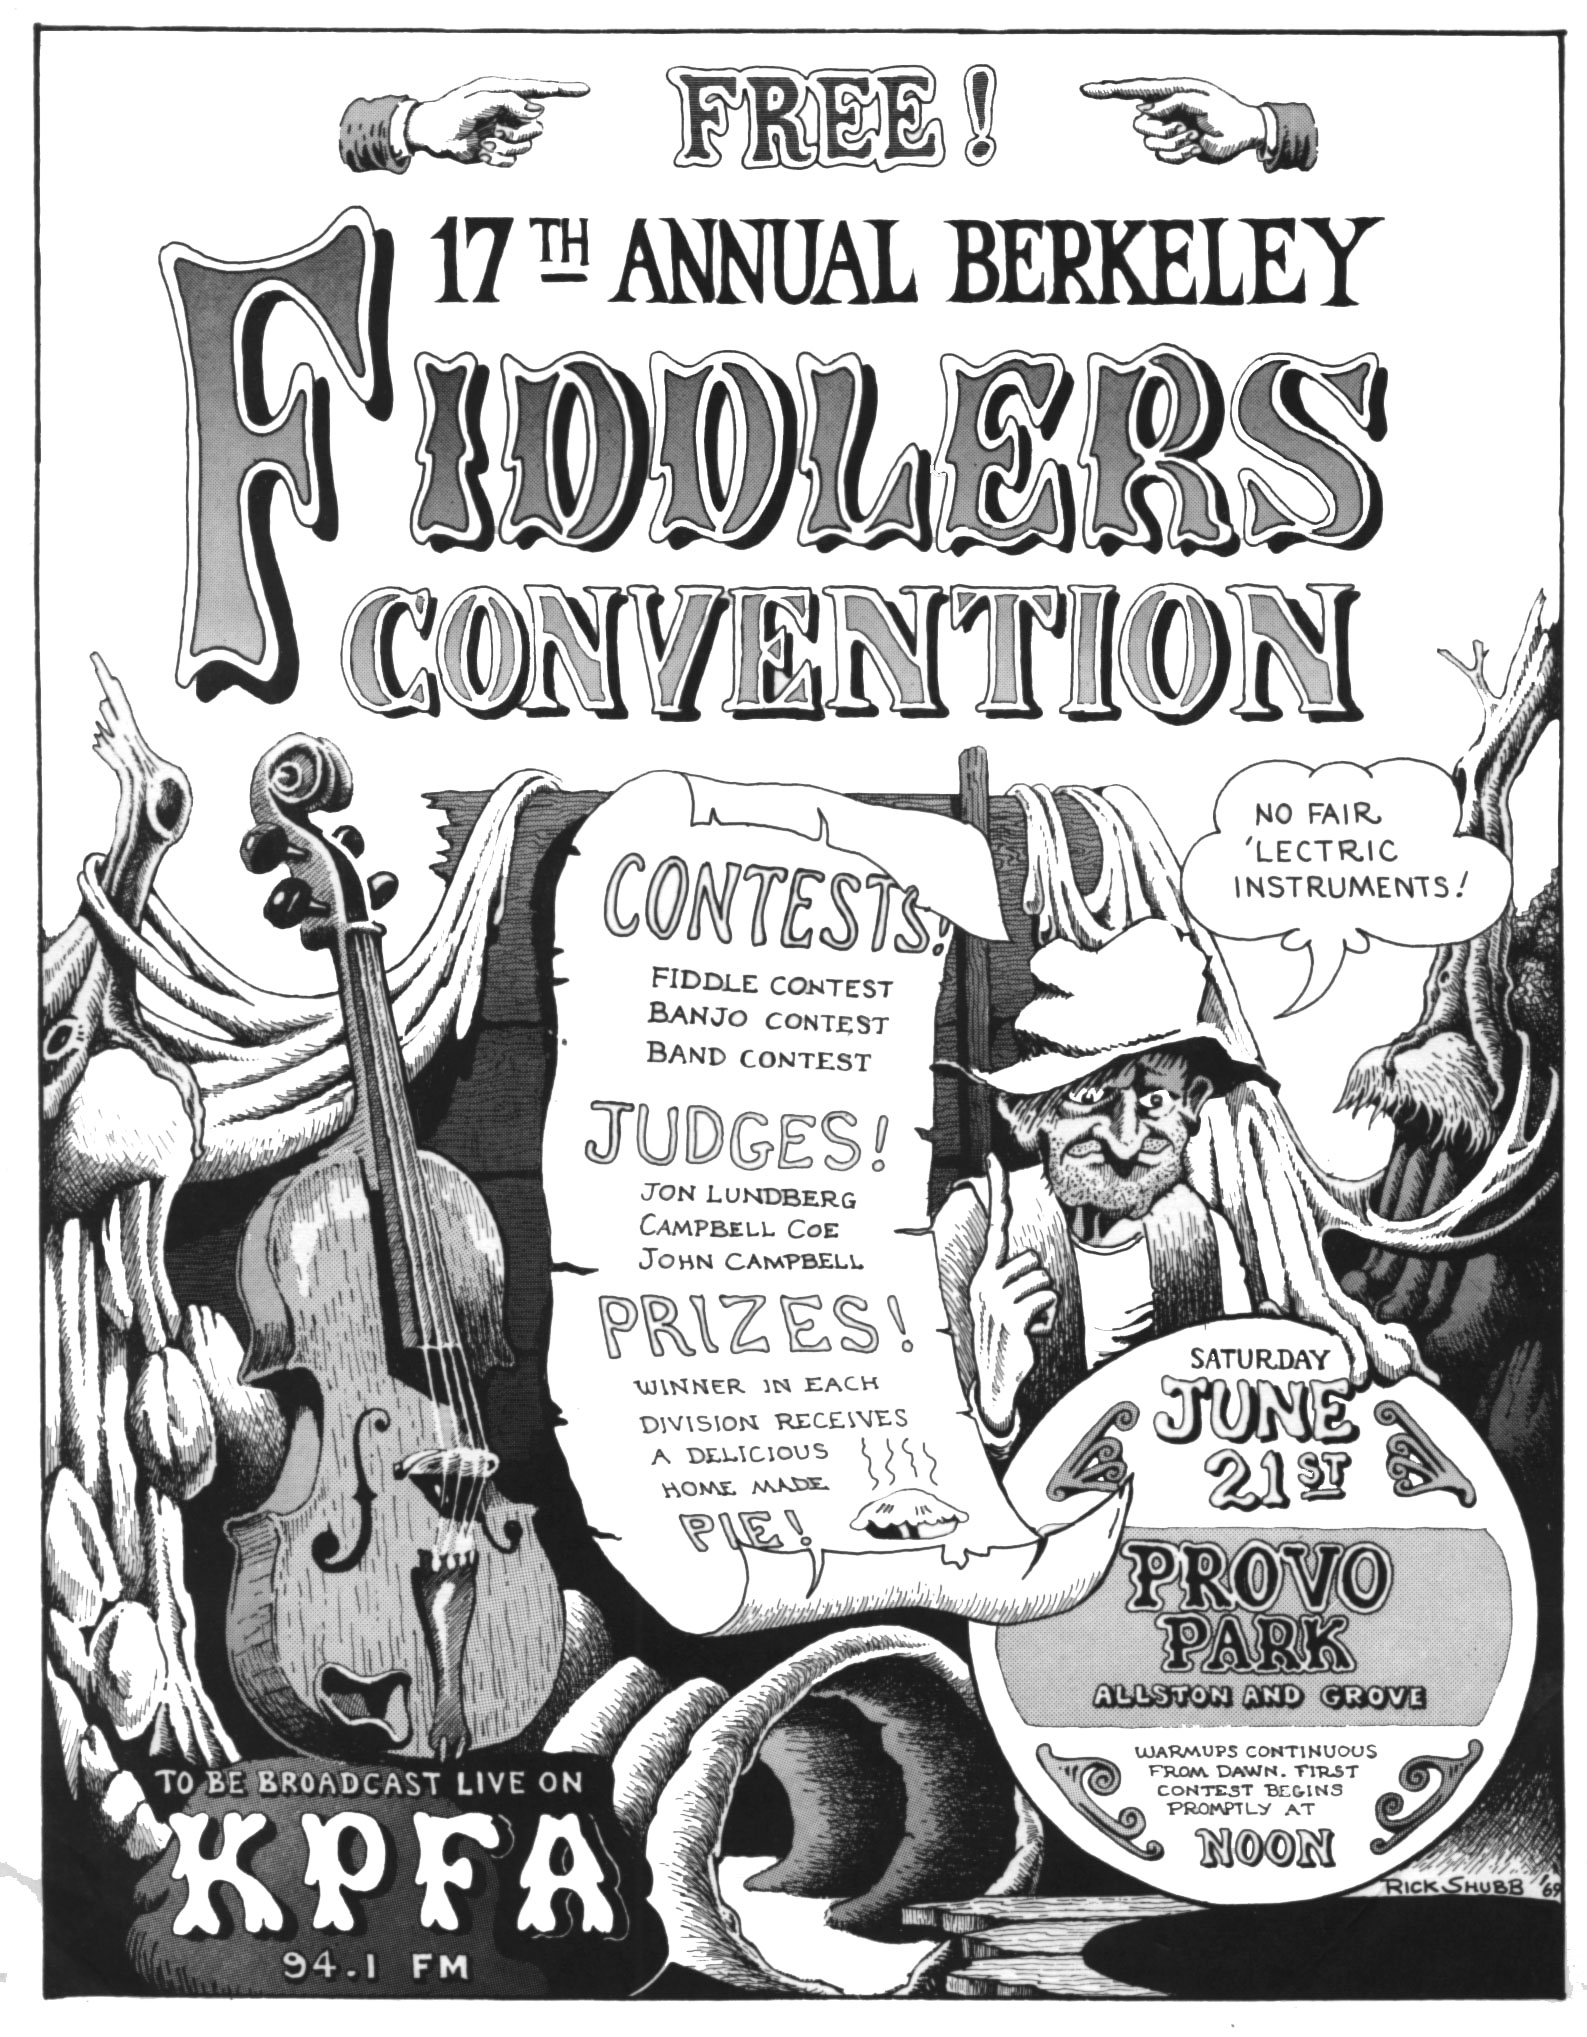 Fiddlers Convention poster